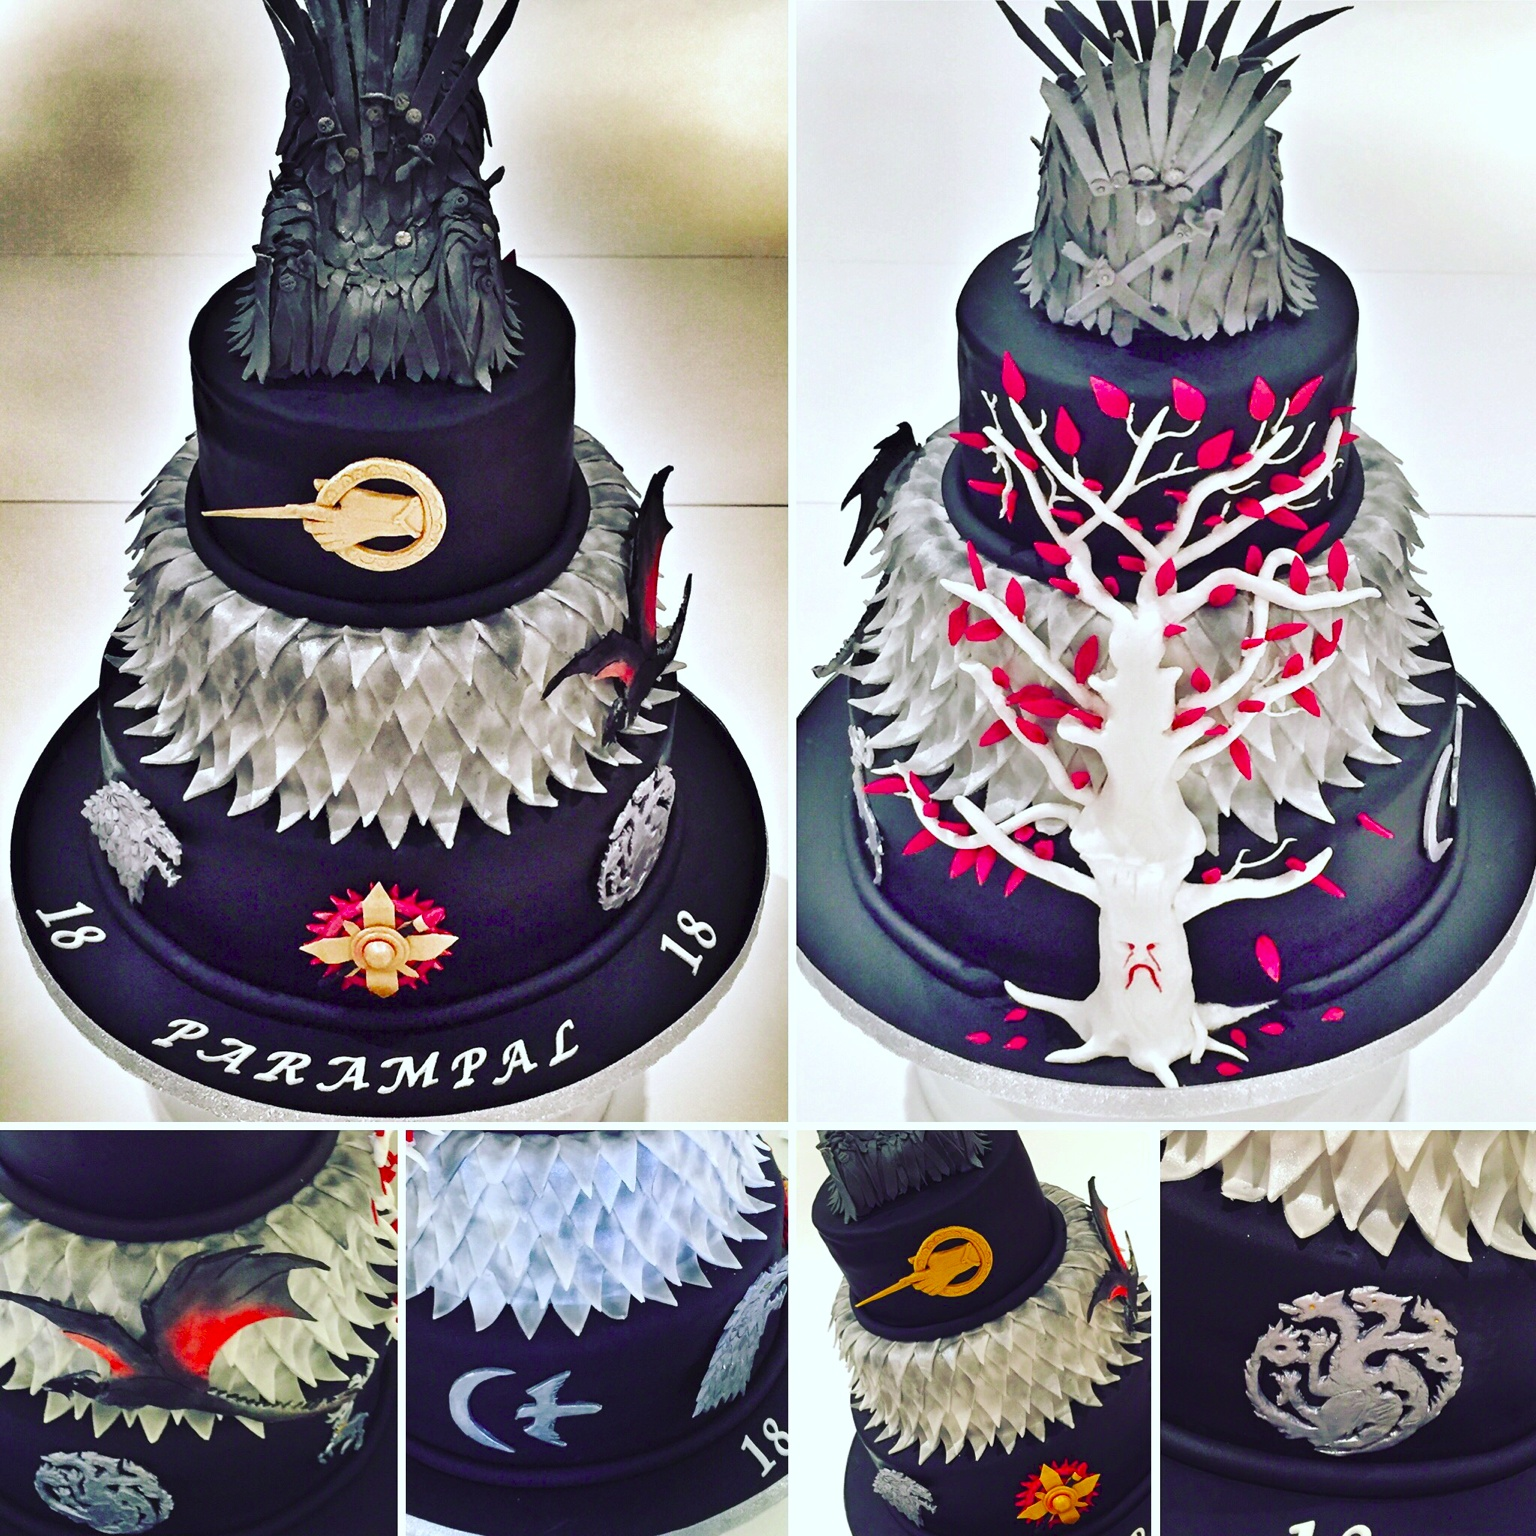 Wondrous Game Of Thrones Cakes Cakeflix Personalised Birthday Cards Cominlily Jamesorg